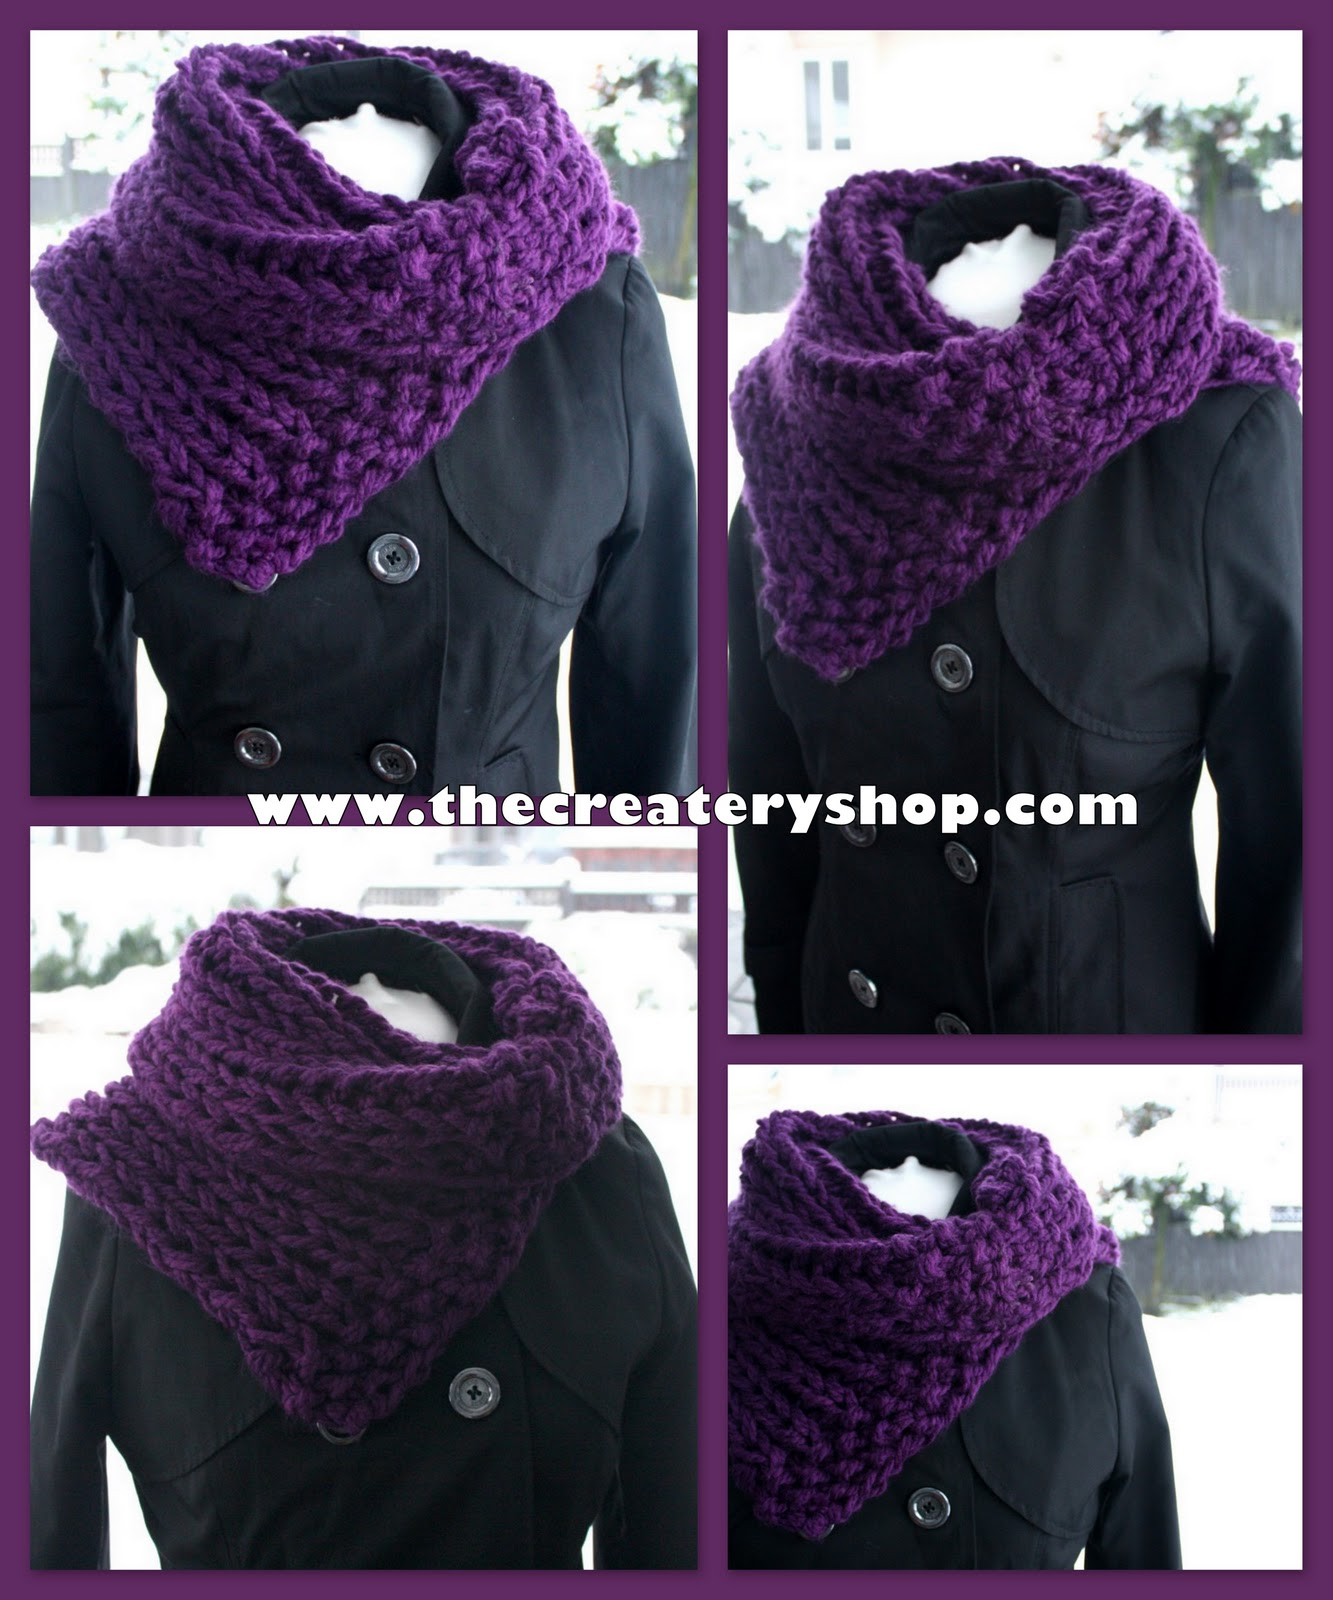 96fef57426ea0 The Createry Shop  Free Easy 3C Chunky Collar Cowl Knitting Pattern